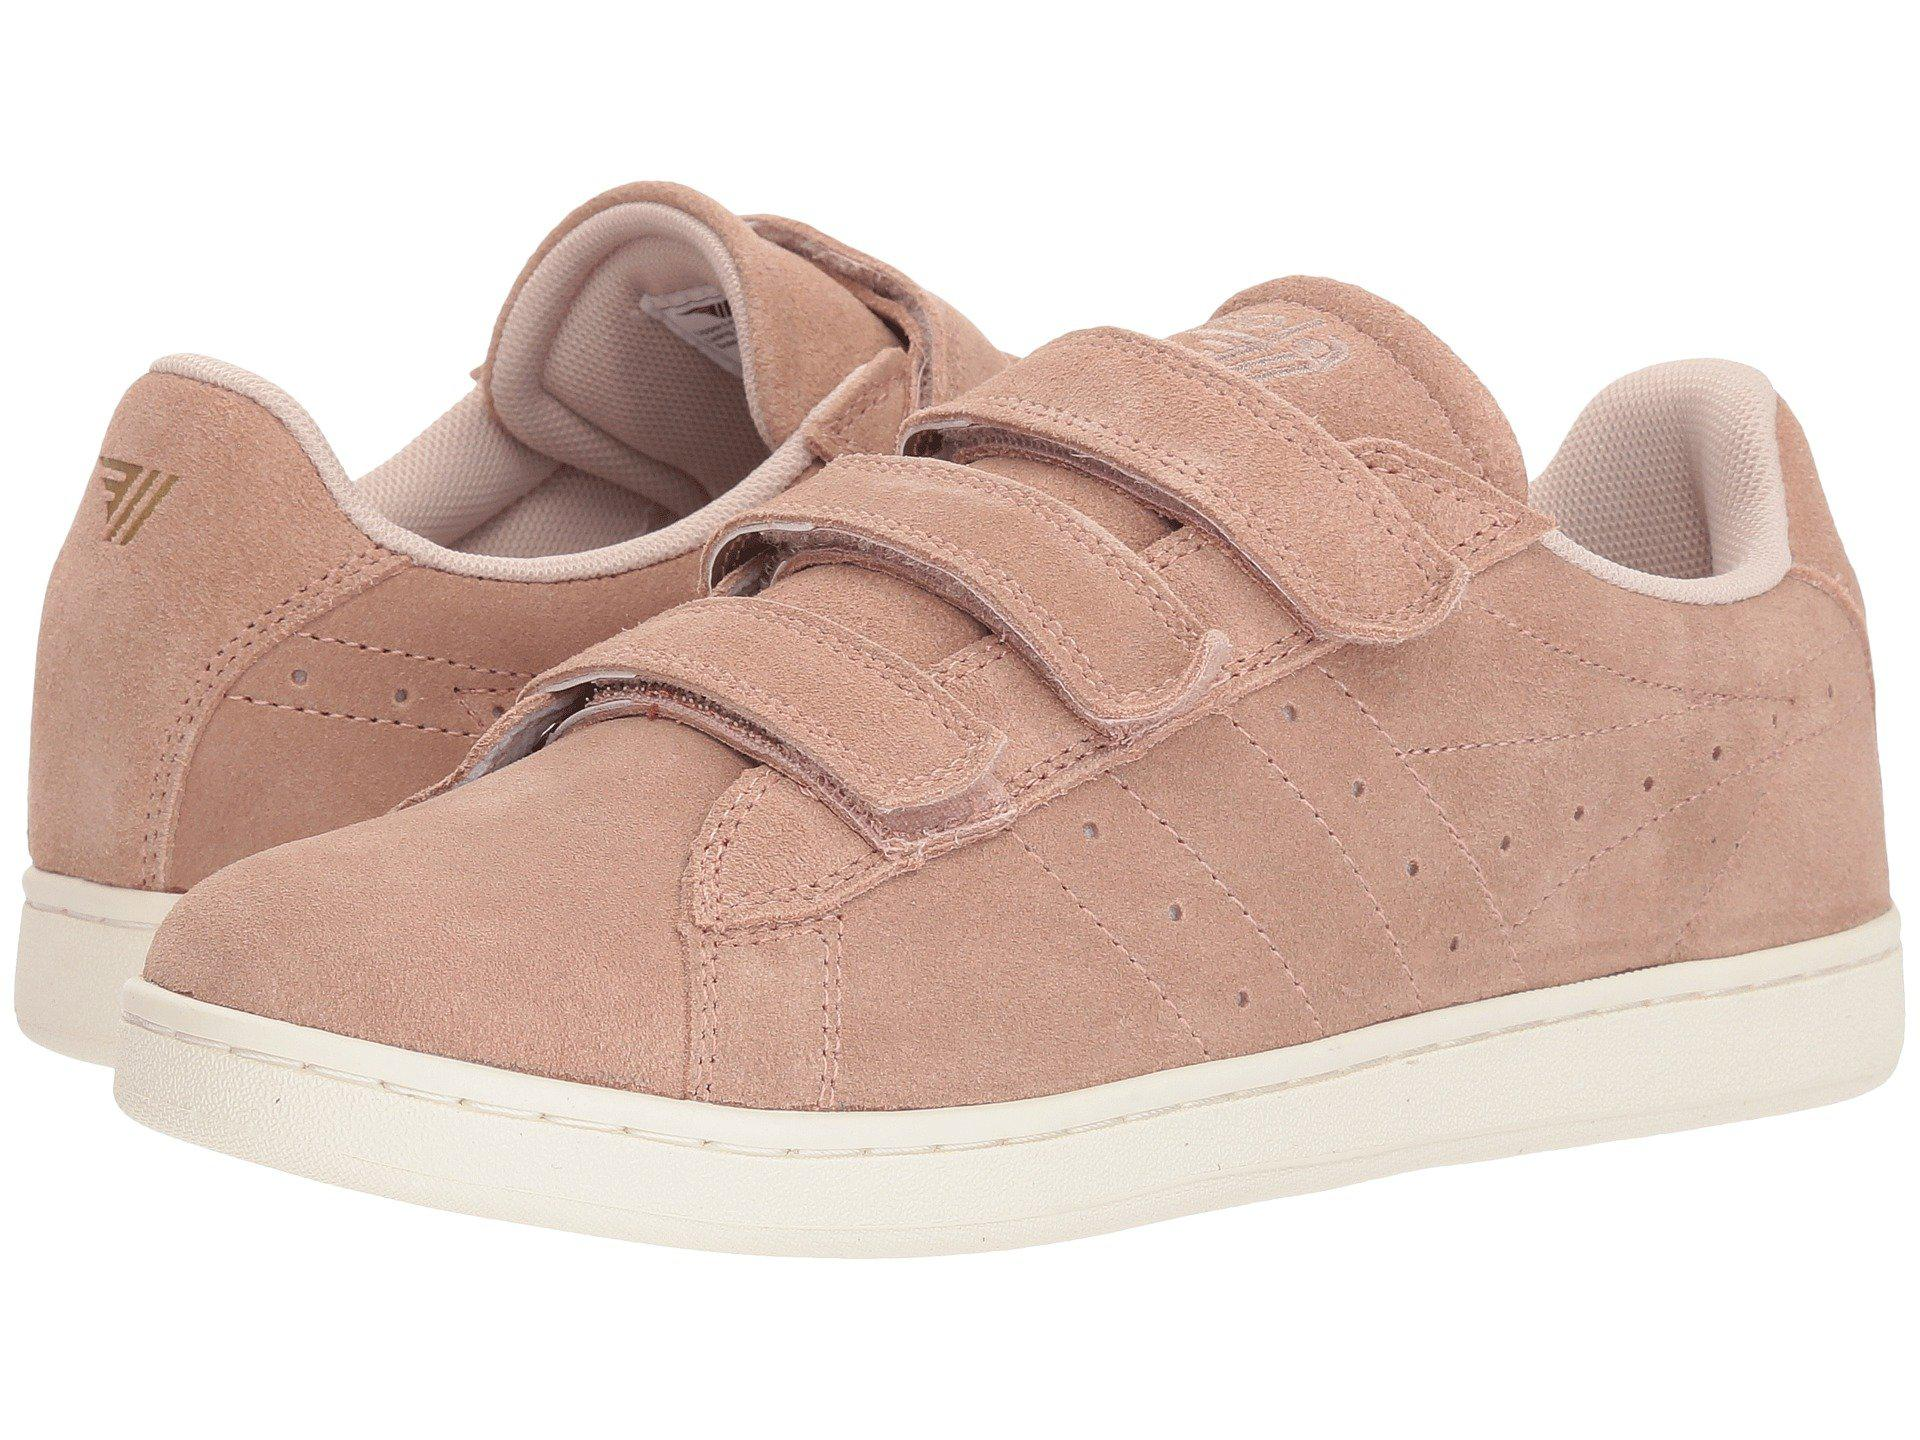 e8add18c239e Lyst - Gola Equipe (baltic off-white) Women s Shoes in Pink